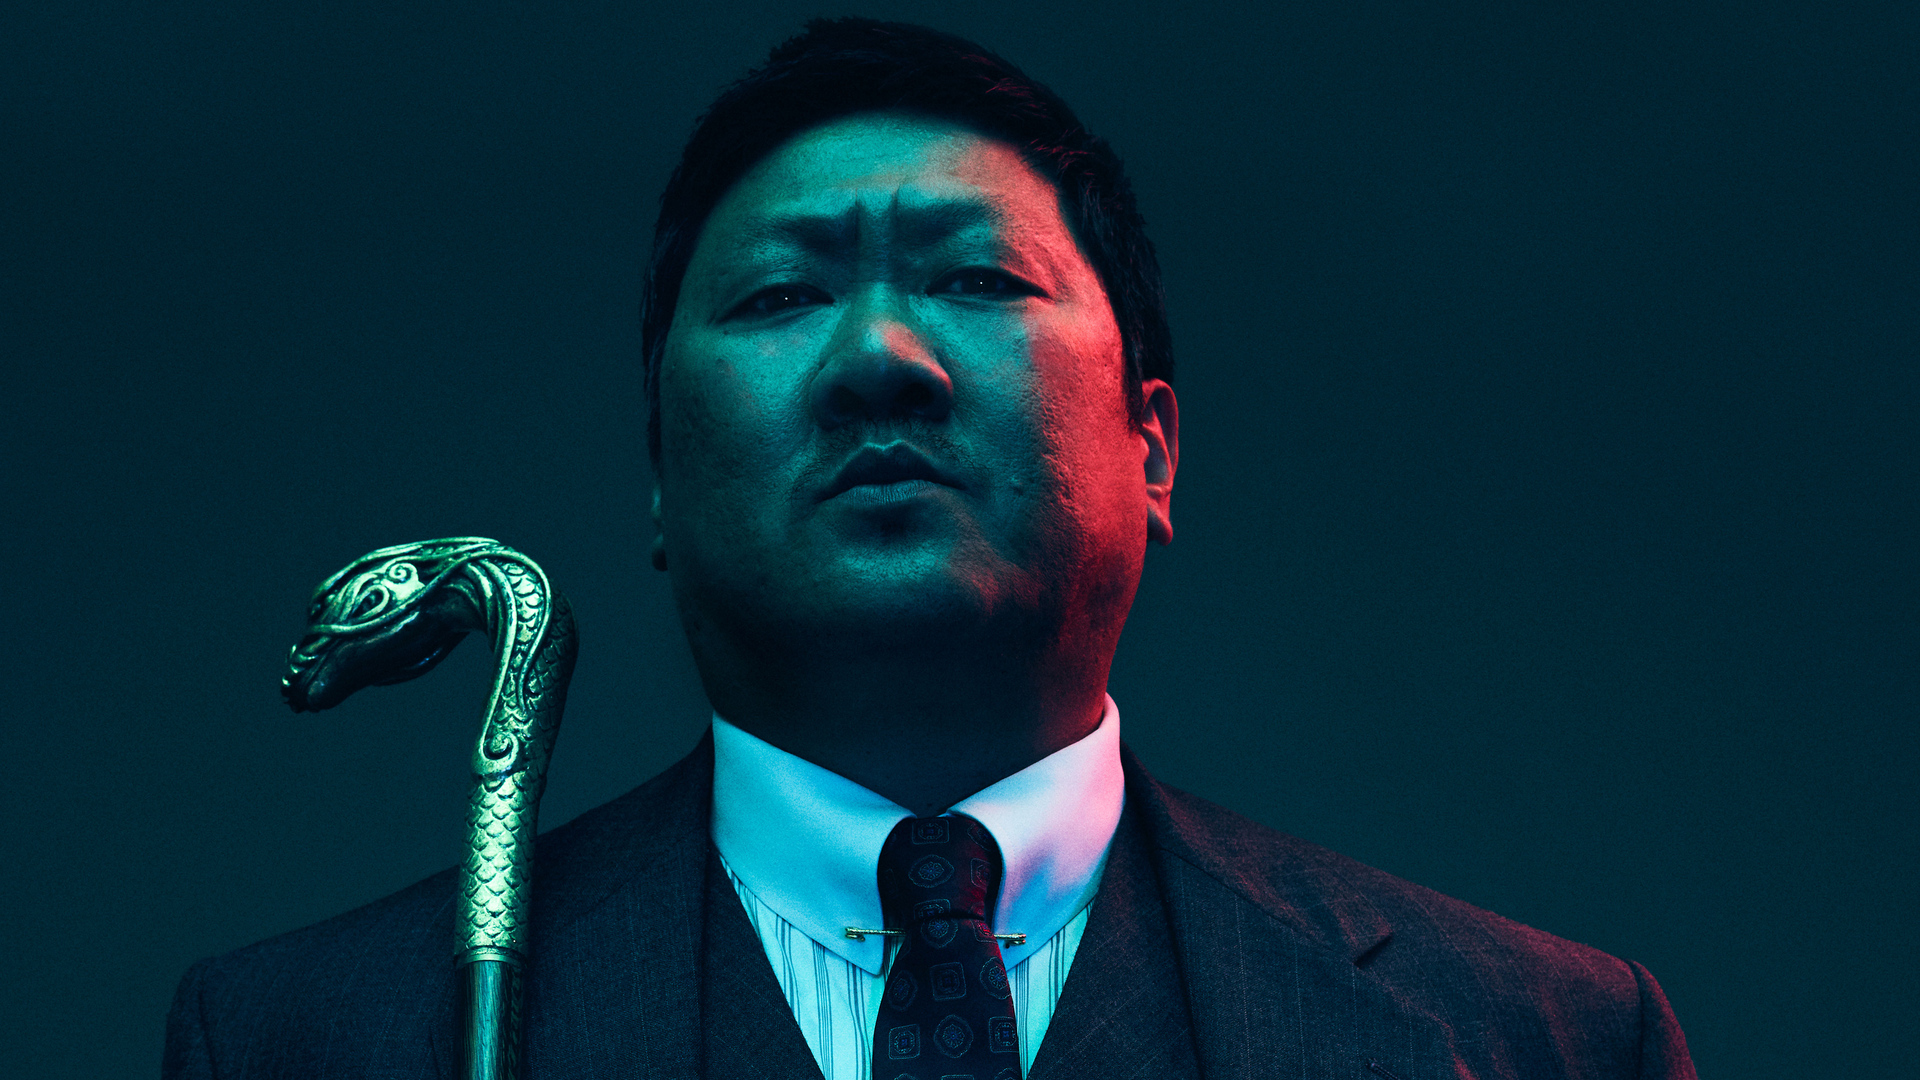 1920x1080 Master Lin In Deadly Class Laptop Full Hd 1080p Hd 4k Wallpapers Images Backgrounds Photos And Pictures